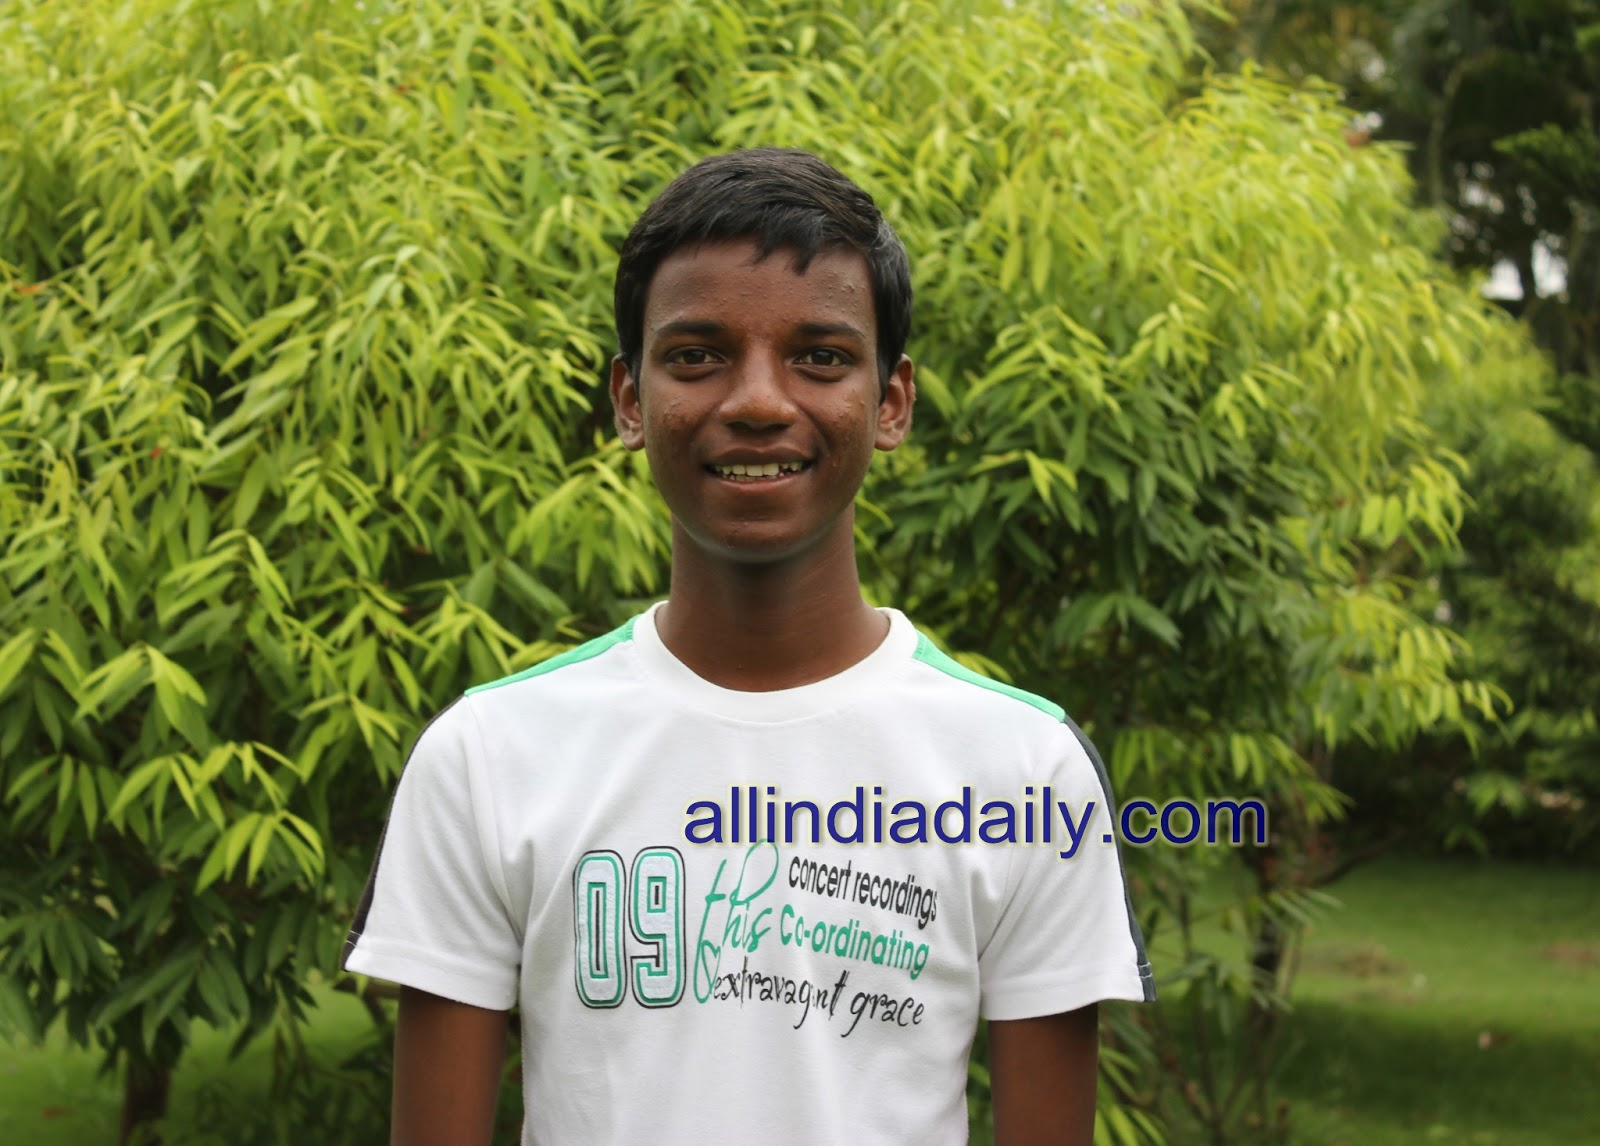 Laxman Hembram Boy from Odisha will represent India at Malala Day Youth Assembly in United Nations